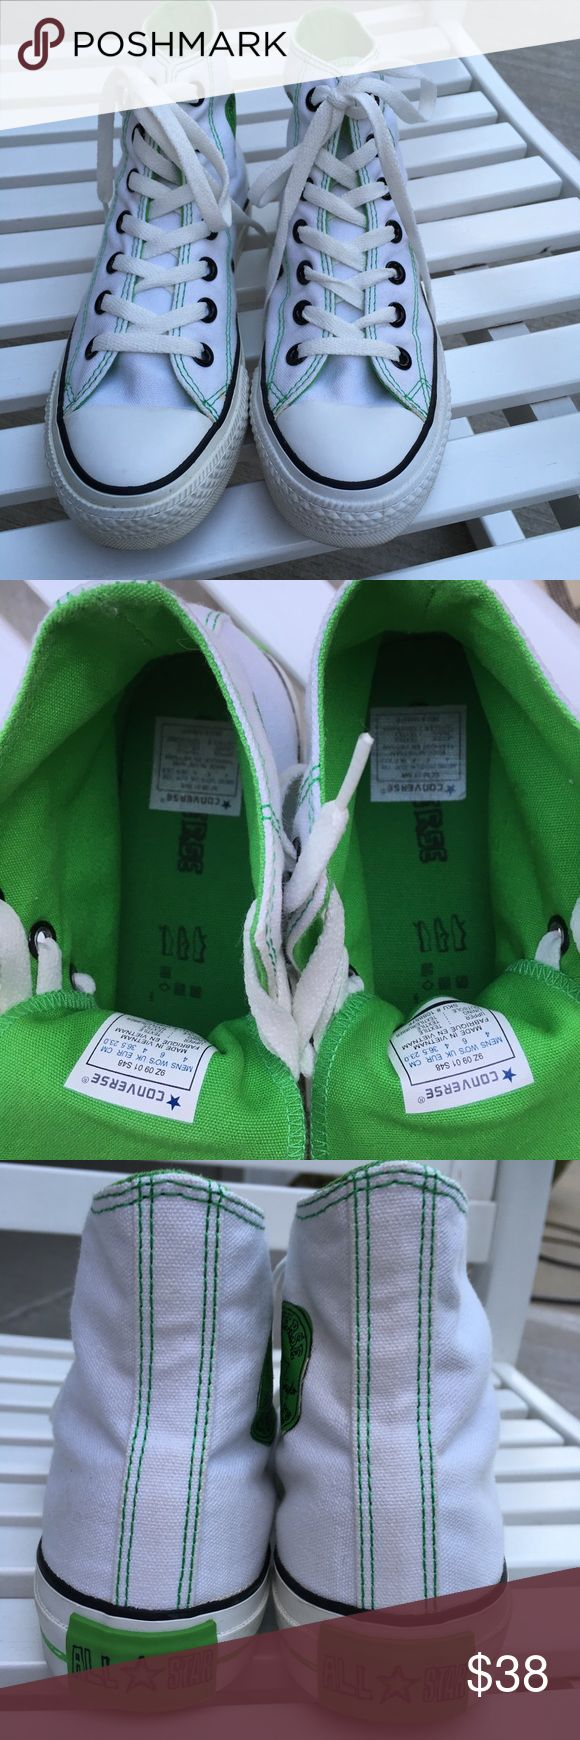 CONVERSE HIGH TOP NWT Converse high top, green and white, comfortable sneakers. 🌸 Converse Shoes Athletic Shoes